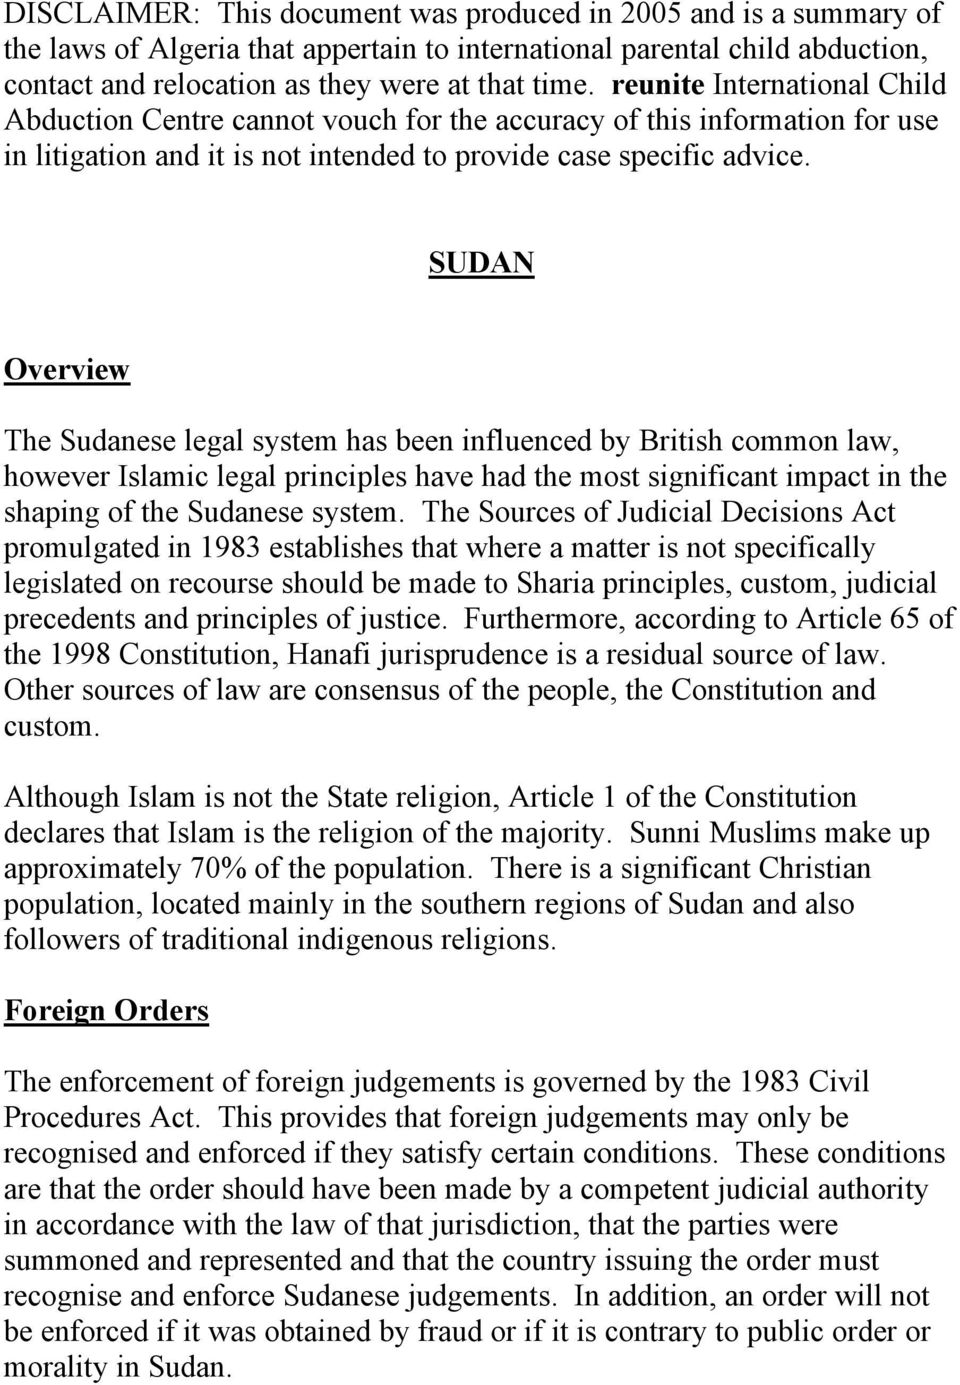 SUDAN Overview The Sudanese legal system has been influenced by British common law, however Islamic legal principles have had the most significant impact in the shaping of the Sudanese system.